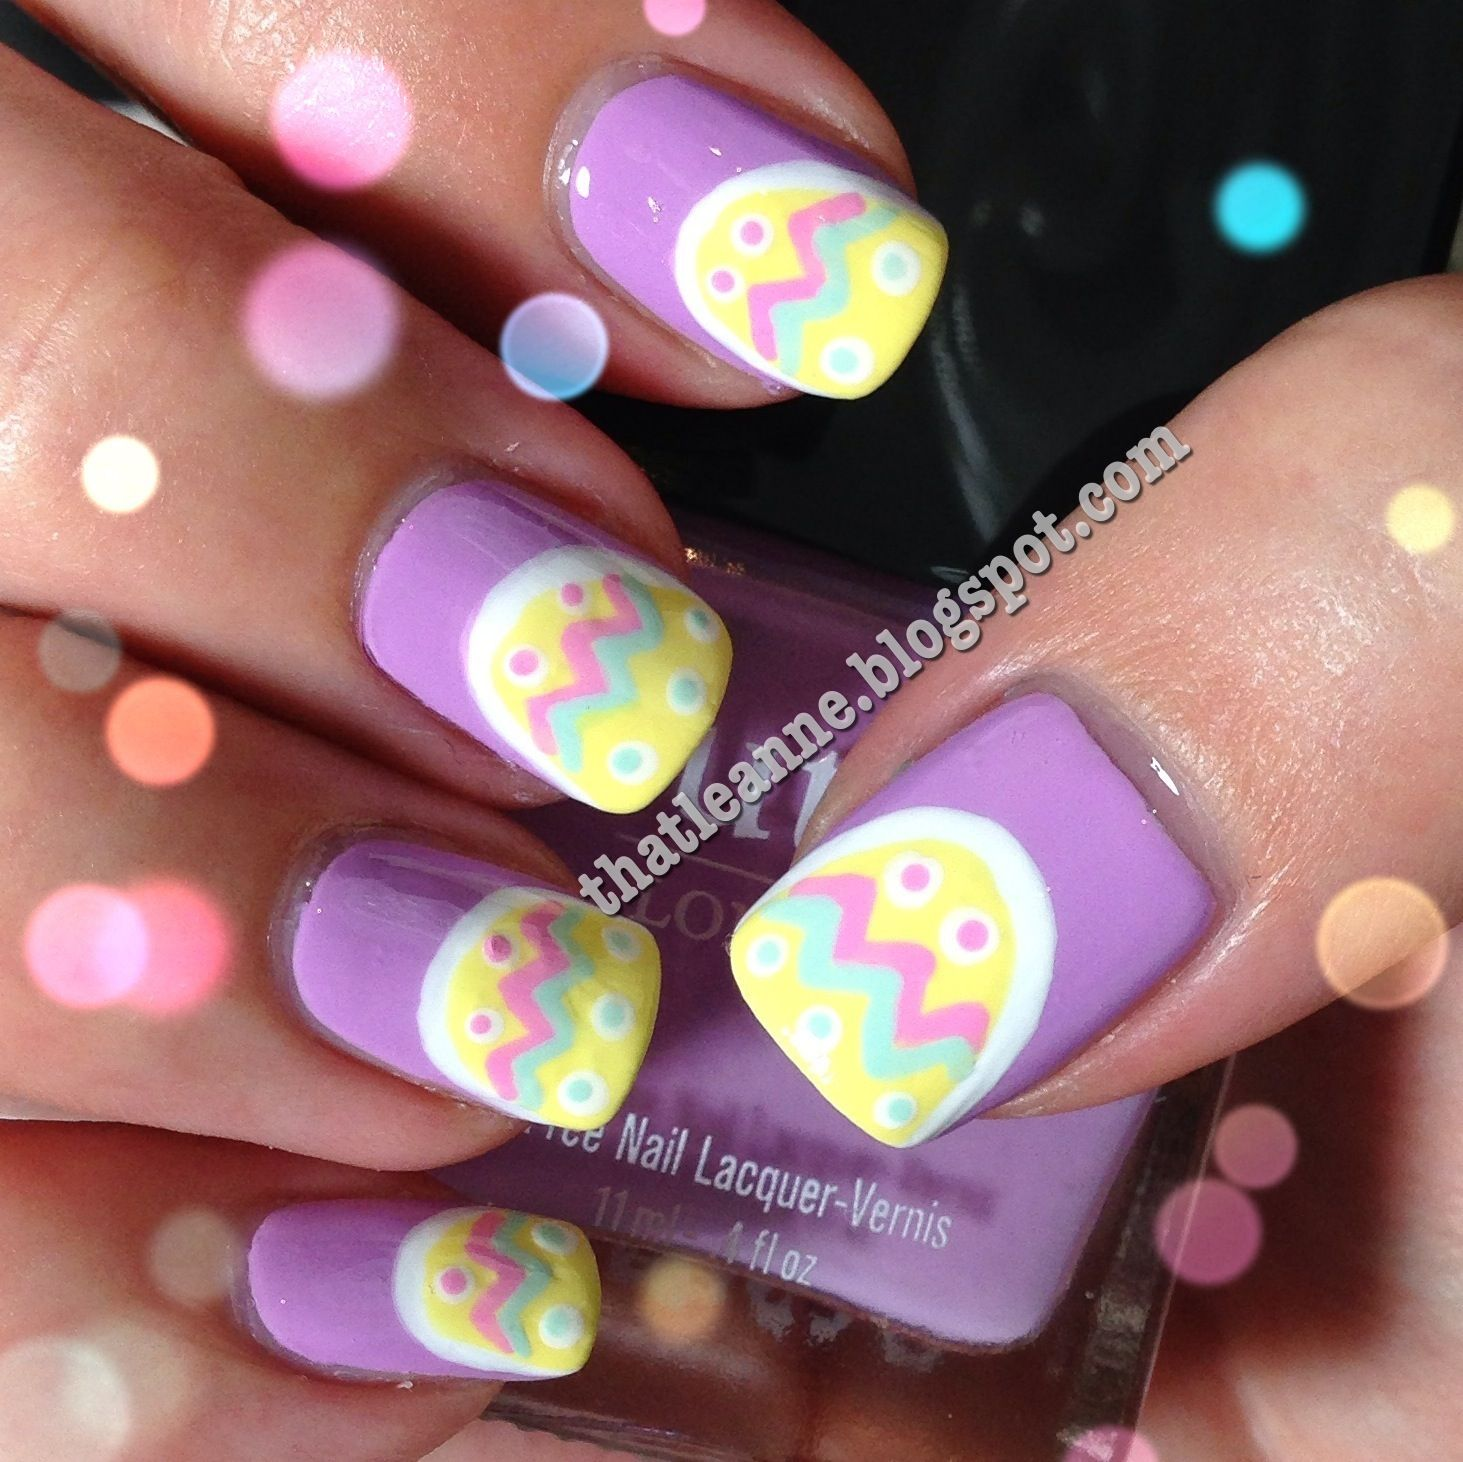 Easy Easter Nail Art see more designs on online nail dryer store - Easy Easter Nail Art See More Designs On Online Nail Dryer Store